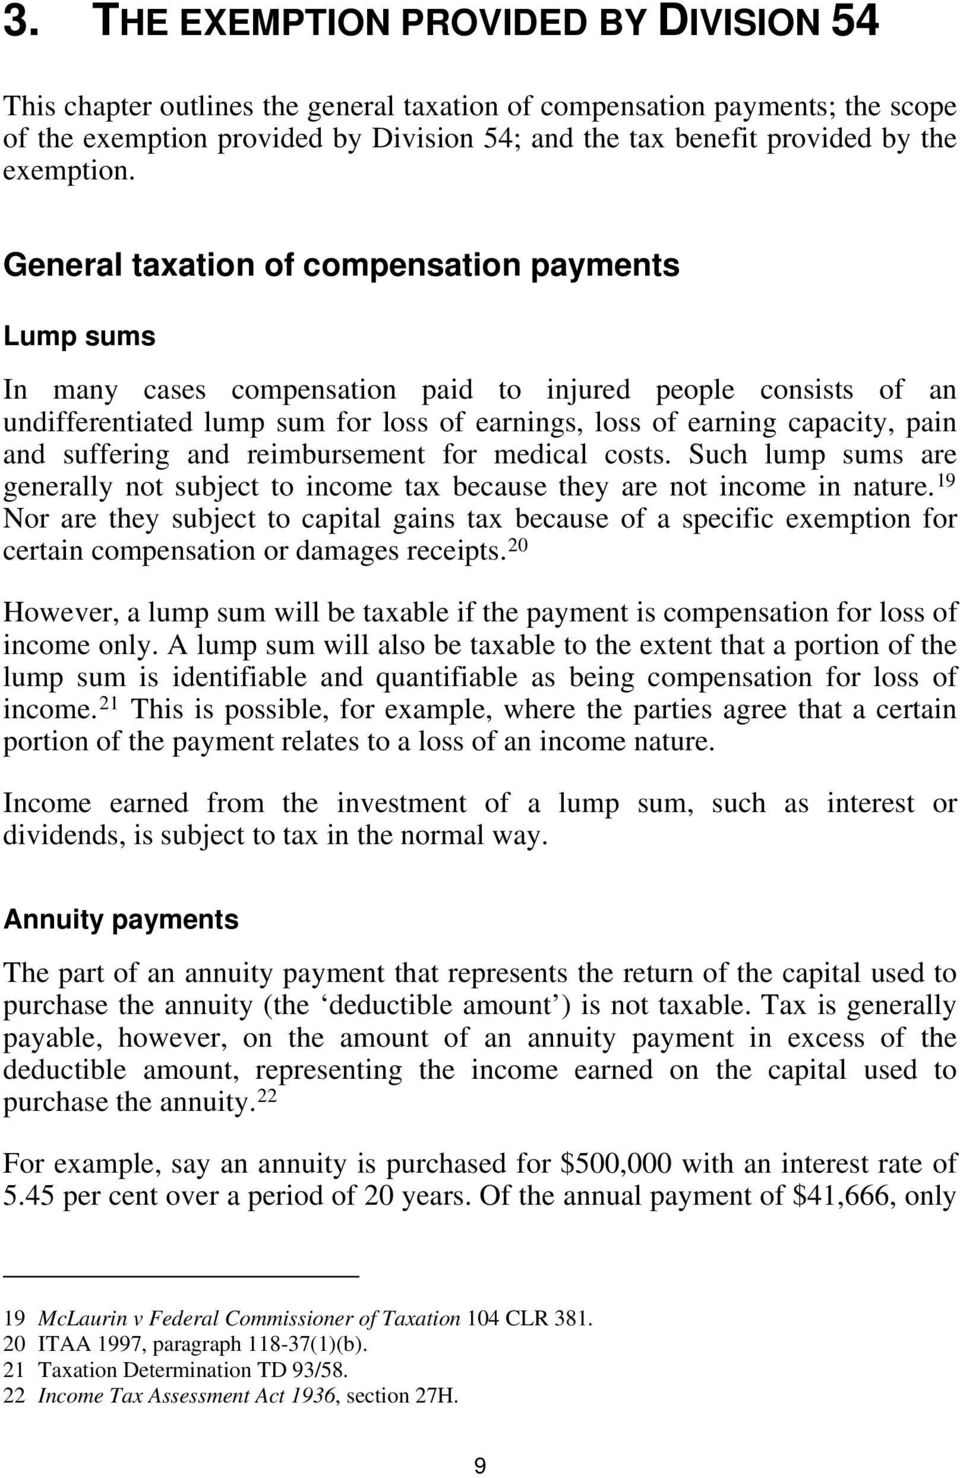 General taxation of compensation payments Lump sums In many cases compensation paid to injured people consists of an undifferentiated lump sum for loss of earnings, loss of earning capacity, pain and